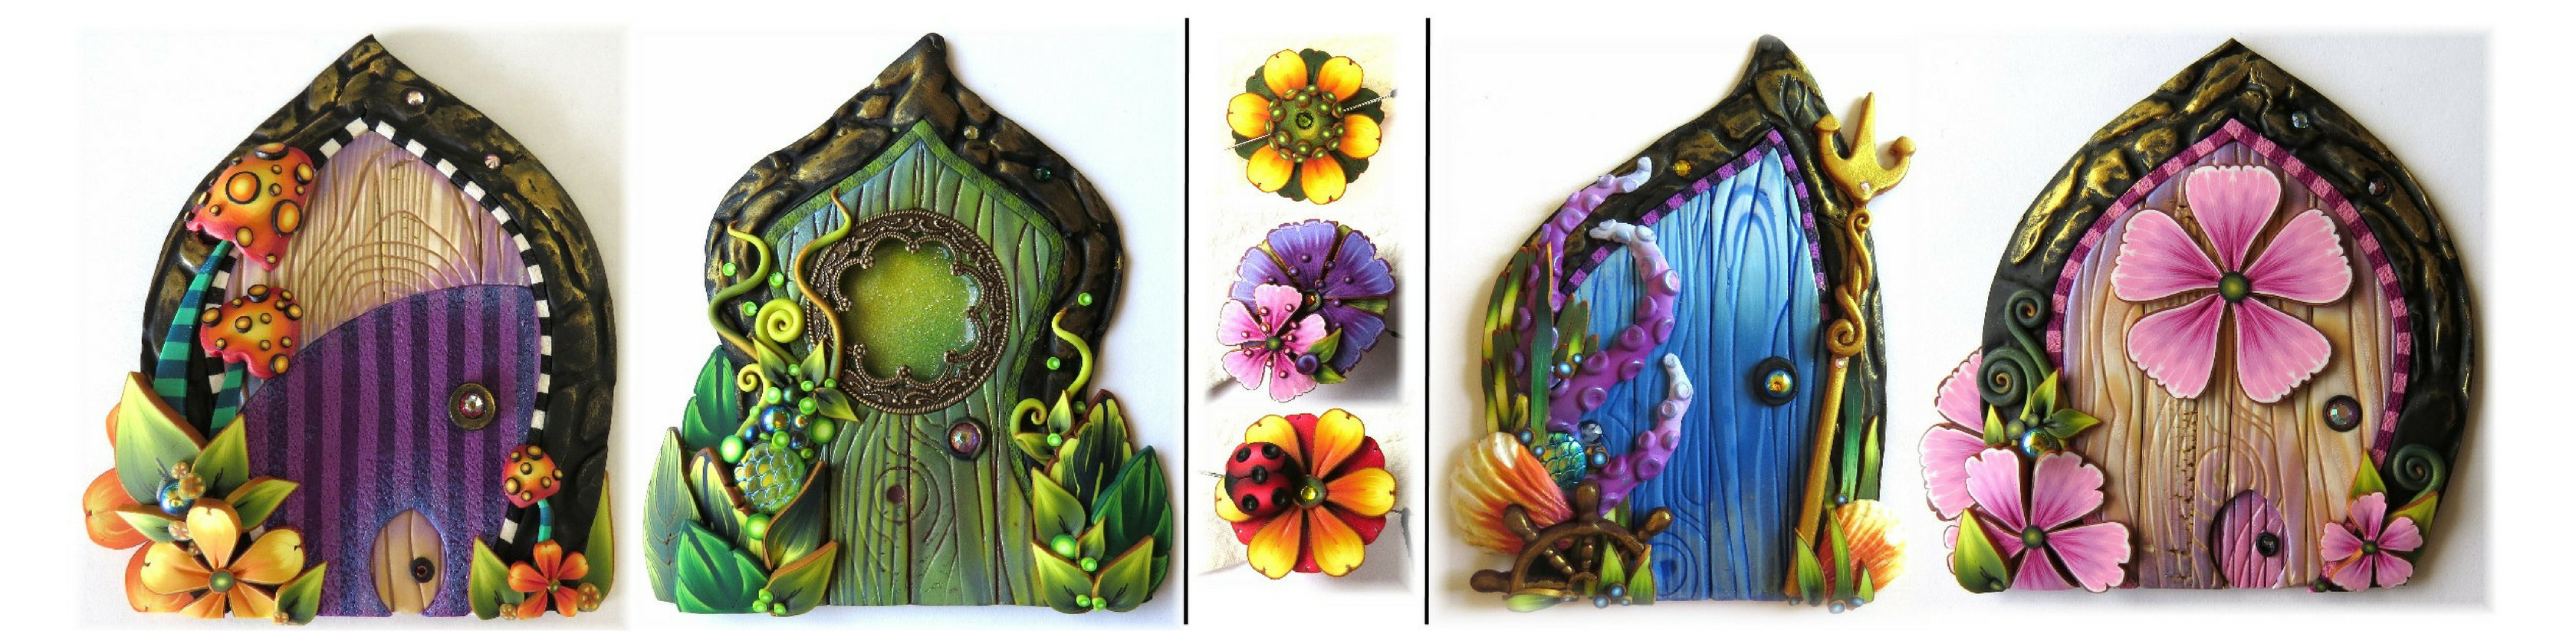 The wonders of a fairy house door and other enchanted doors in polymer clay & The wonders of a fairy house door and other enchanted doors in ...